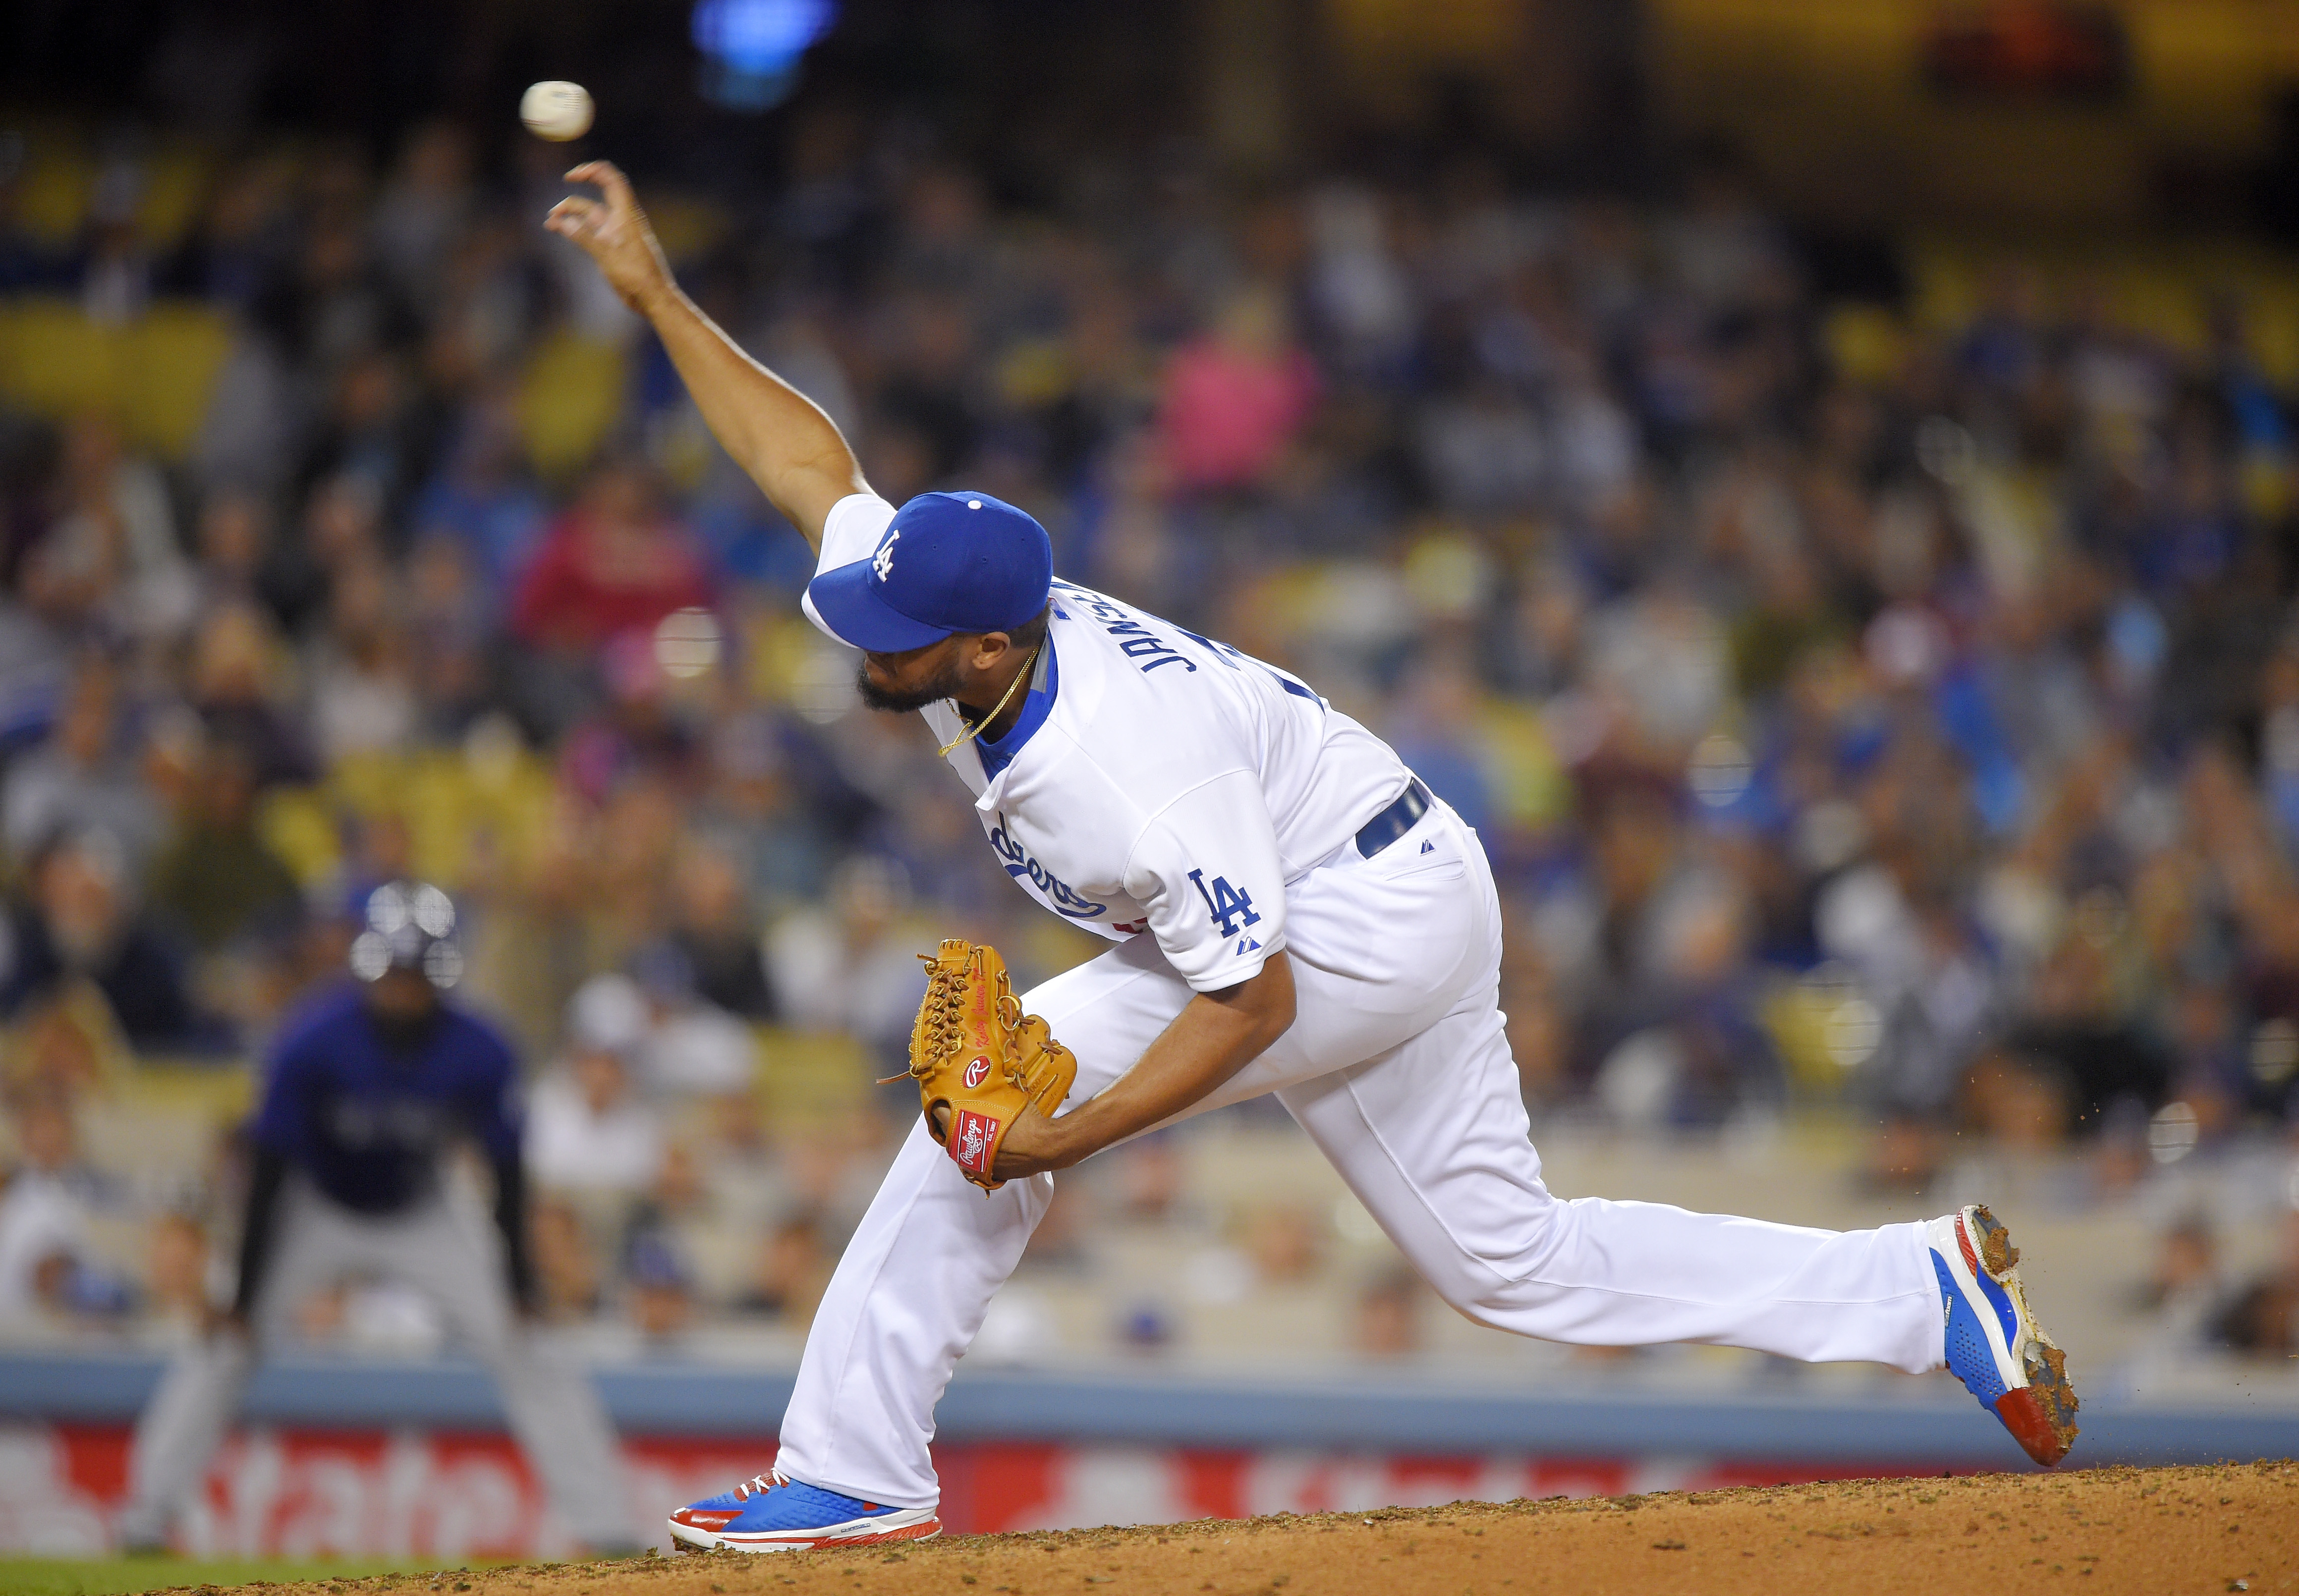 Los Angeles Dodgers relief pitcher Kenley Jansen throws to the plate during the eighth inning of a baseball game against the Colorado Rockies, Friday, May 15, 2015, in Los Angeles. (AP Photo/Mark J. Terrill)